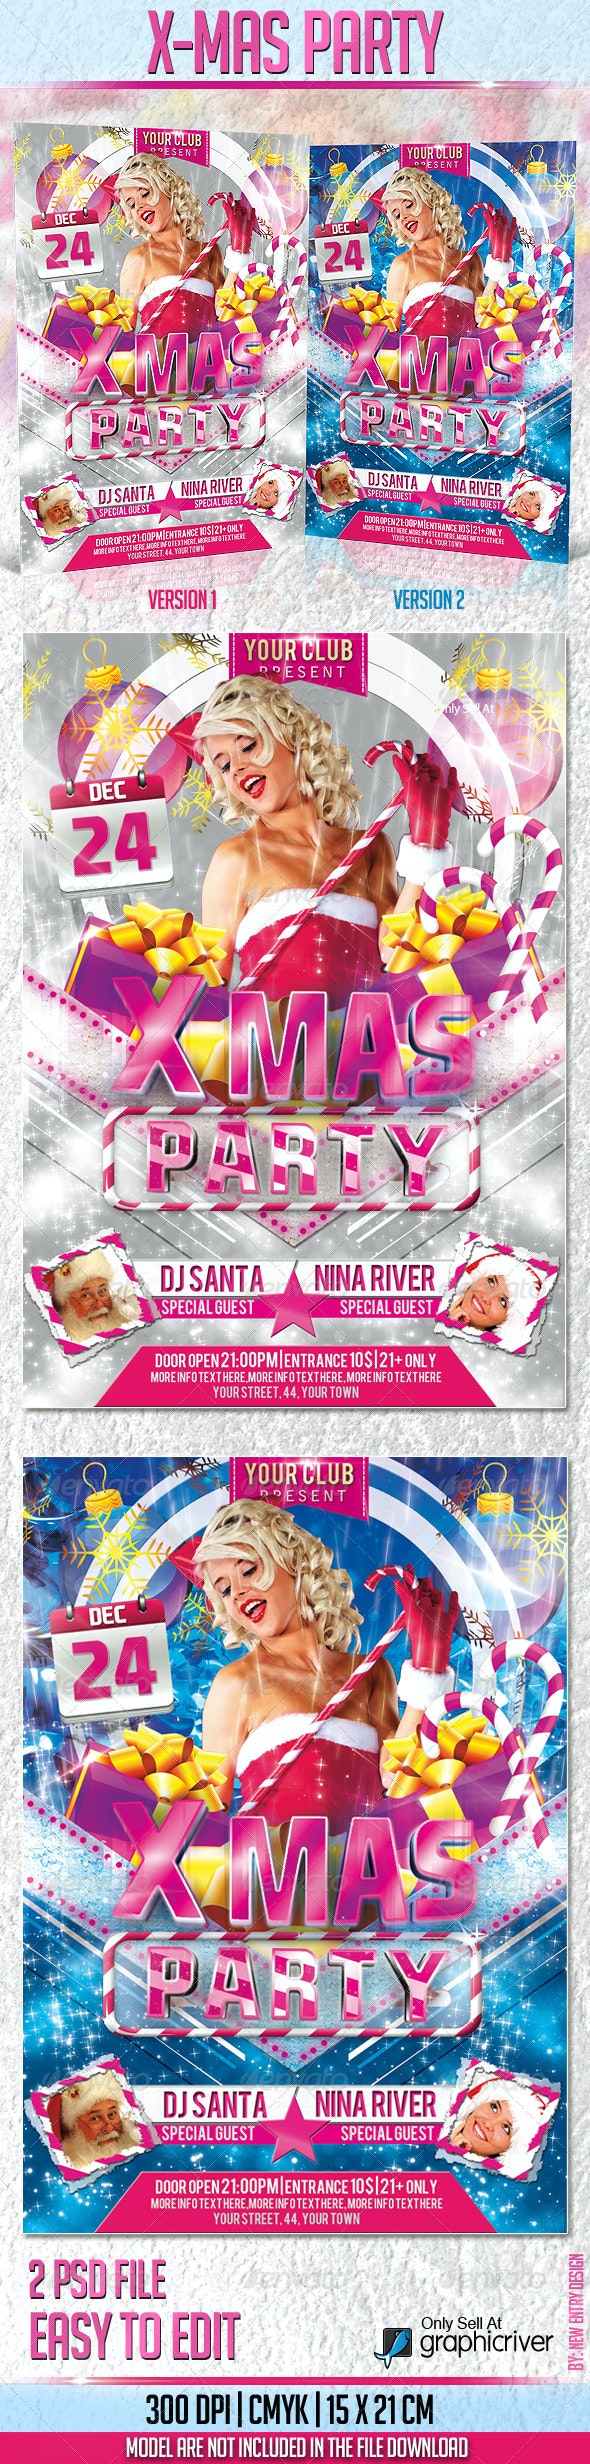 X-Mas Party Flyer Template - Holidays Events